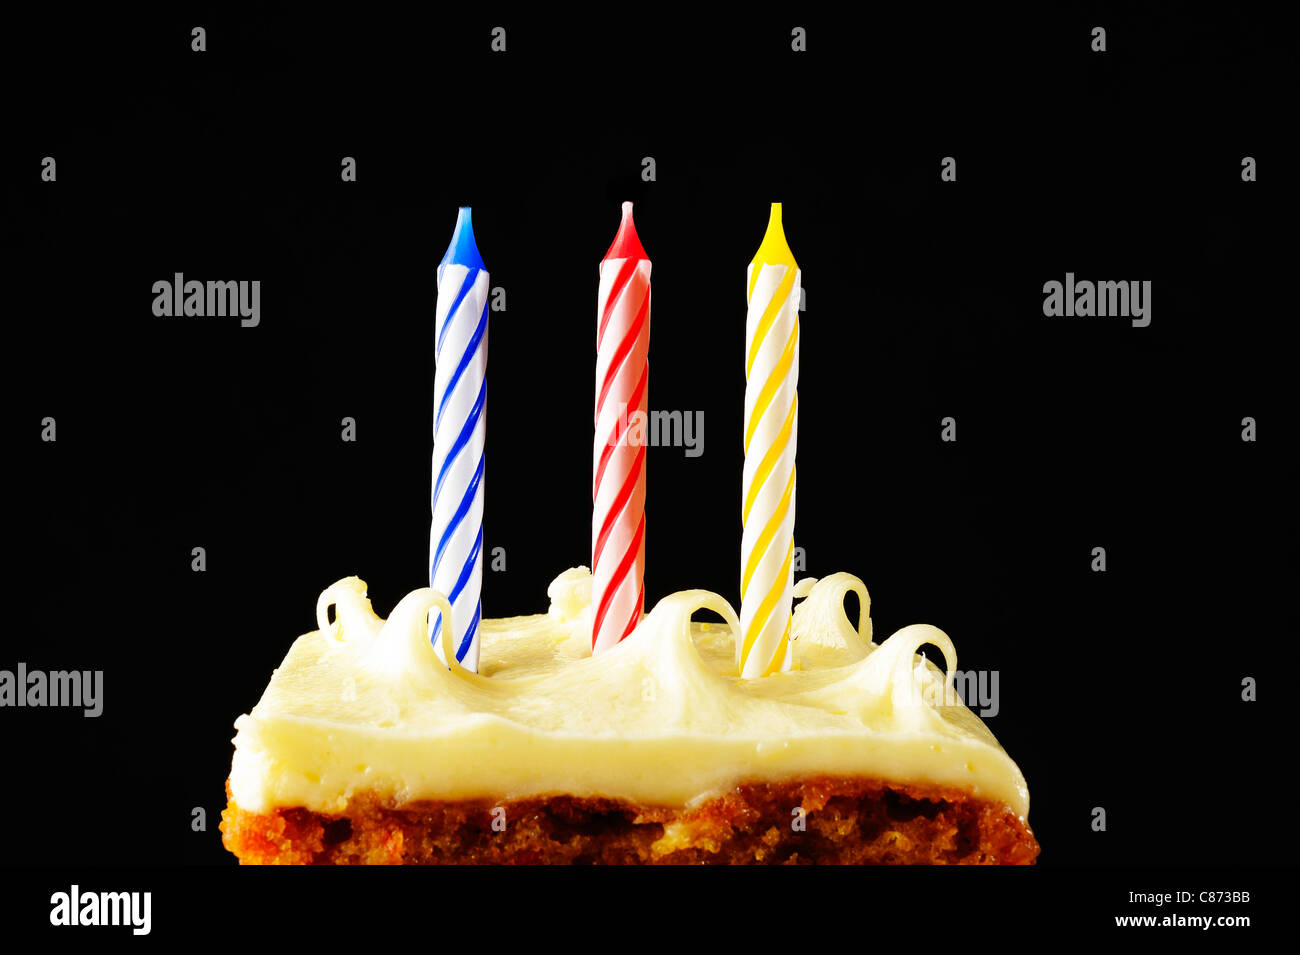 candles on a birthday cake - Stock Image